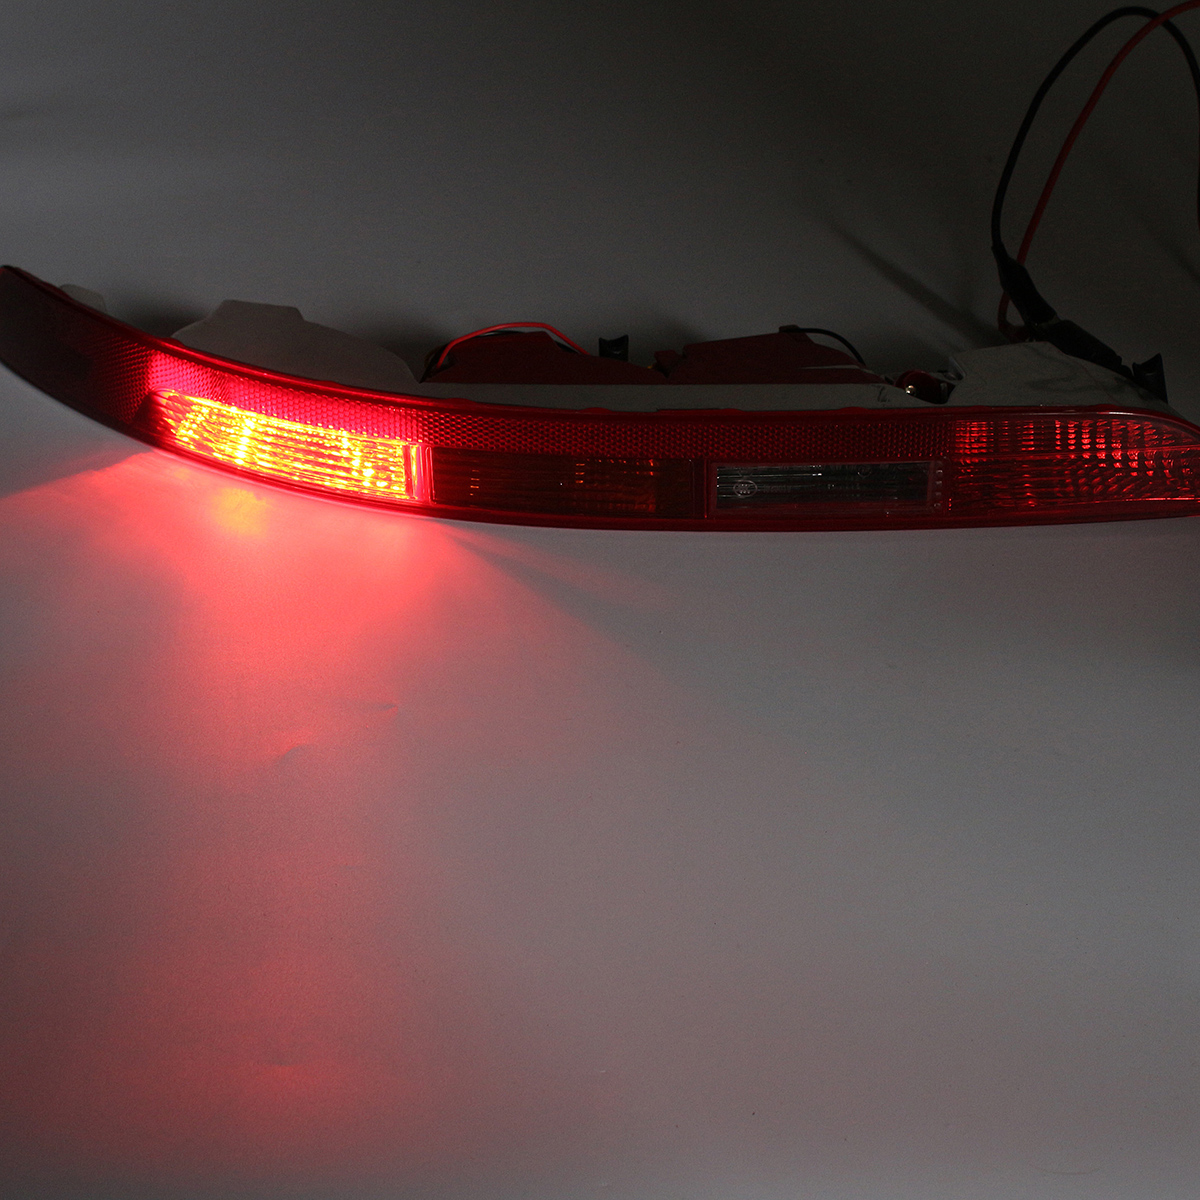 Car Rear Bumper Tail Light Cover with Lamp Left Side for Audi Q5 2.0T 2009-2015 8R0945095